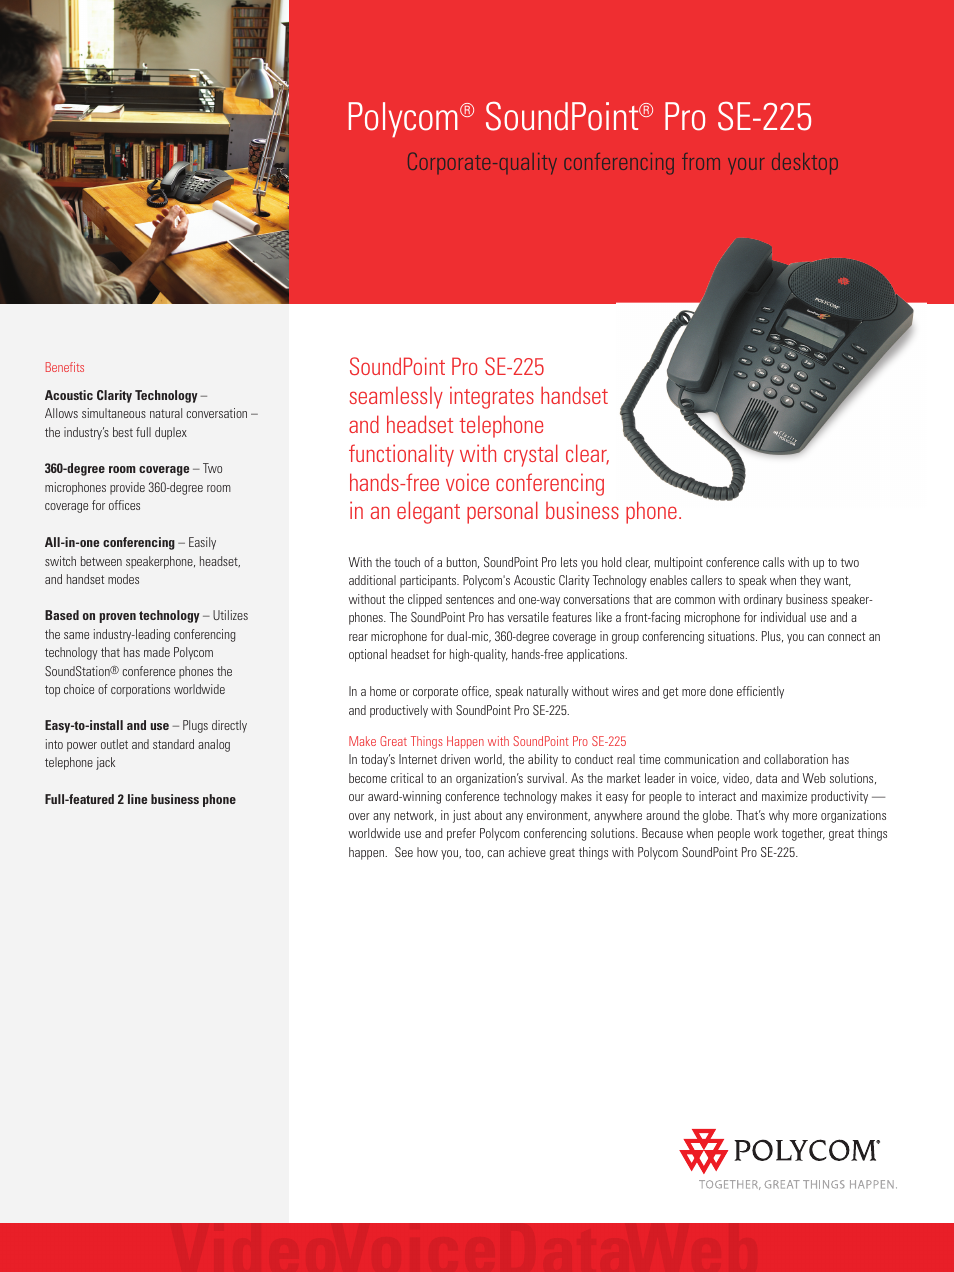 polycom soundpoint pro 2200 06325 001 user manual 2 pages also rh manualsdir com polycom soundpoint pro se-225 corded phone manual polycom soundpoint pro se-225 manual